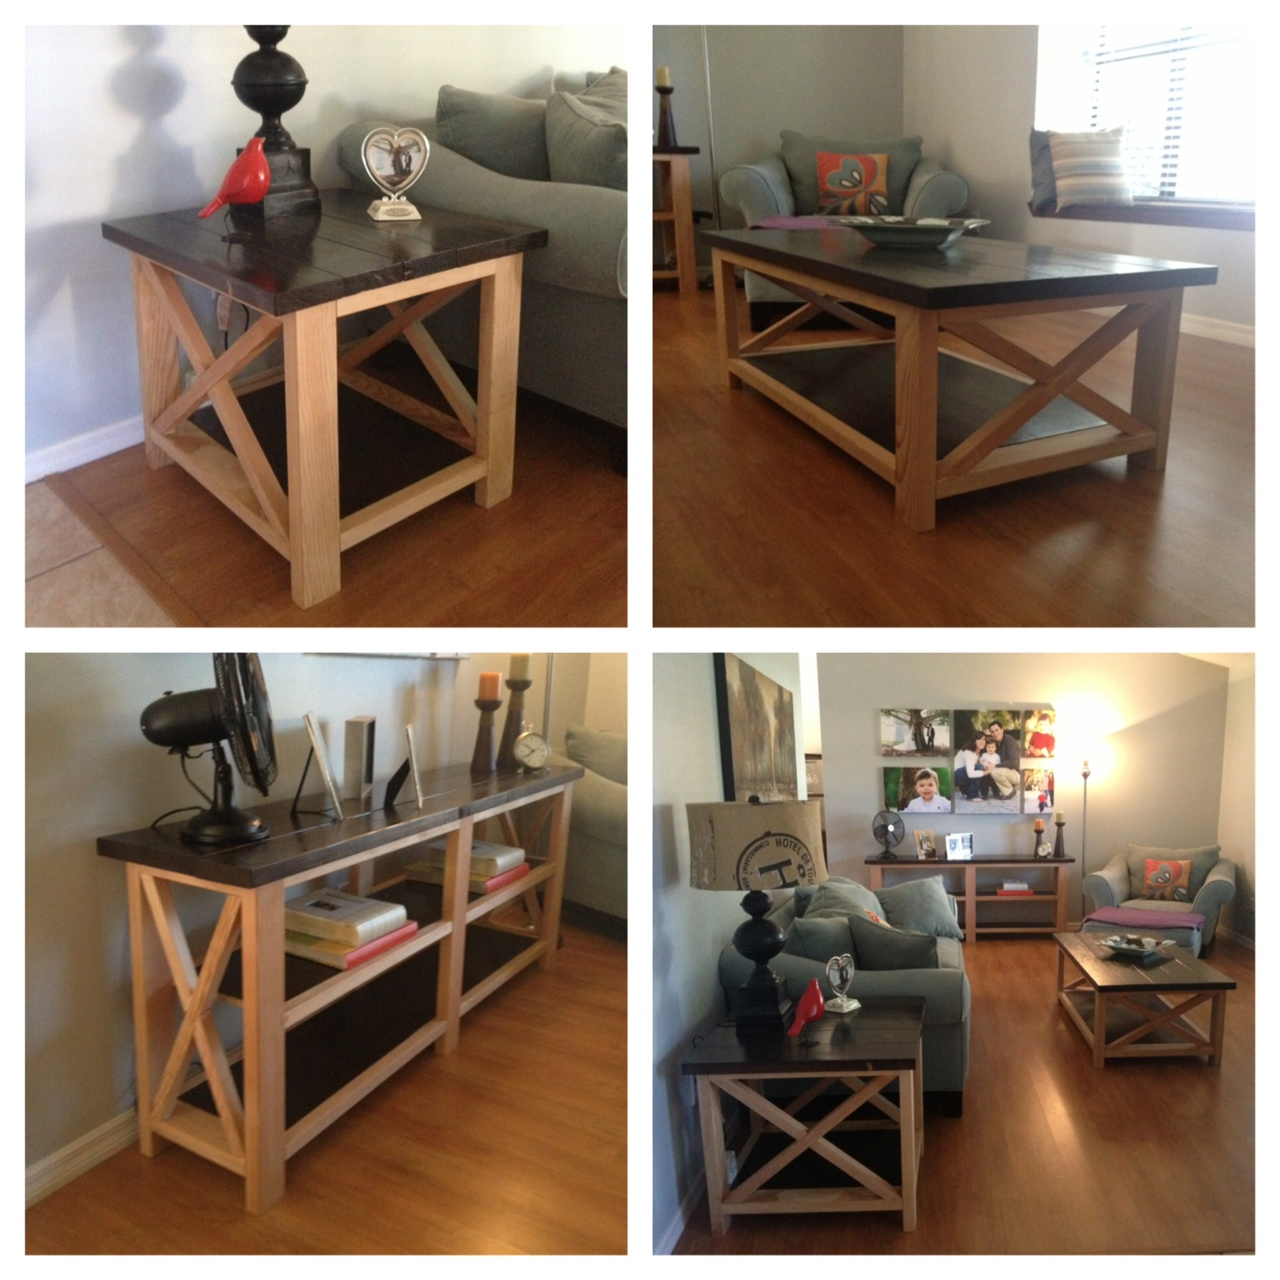 End Table Decor. Rustic X Coffee Table, End Table And Console Decor